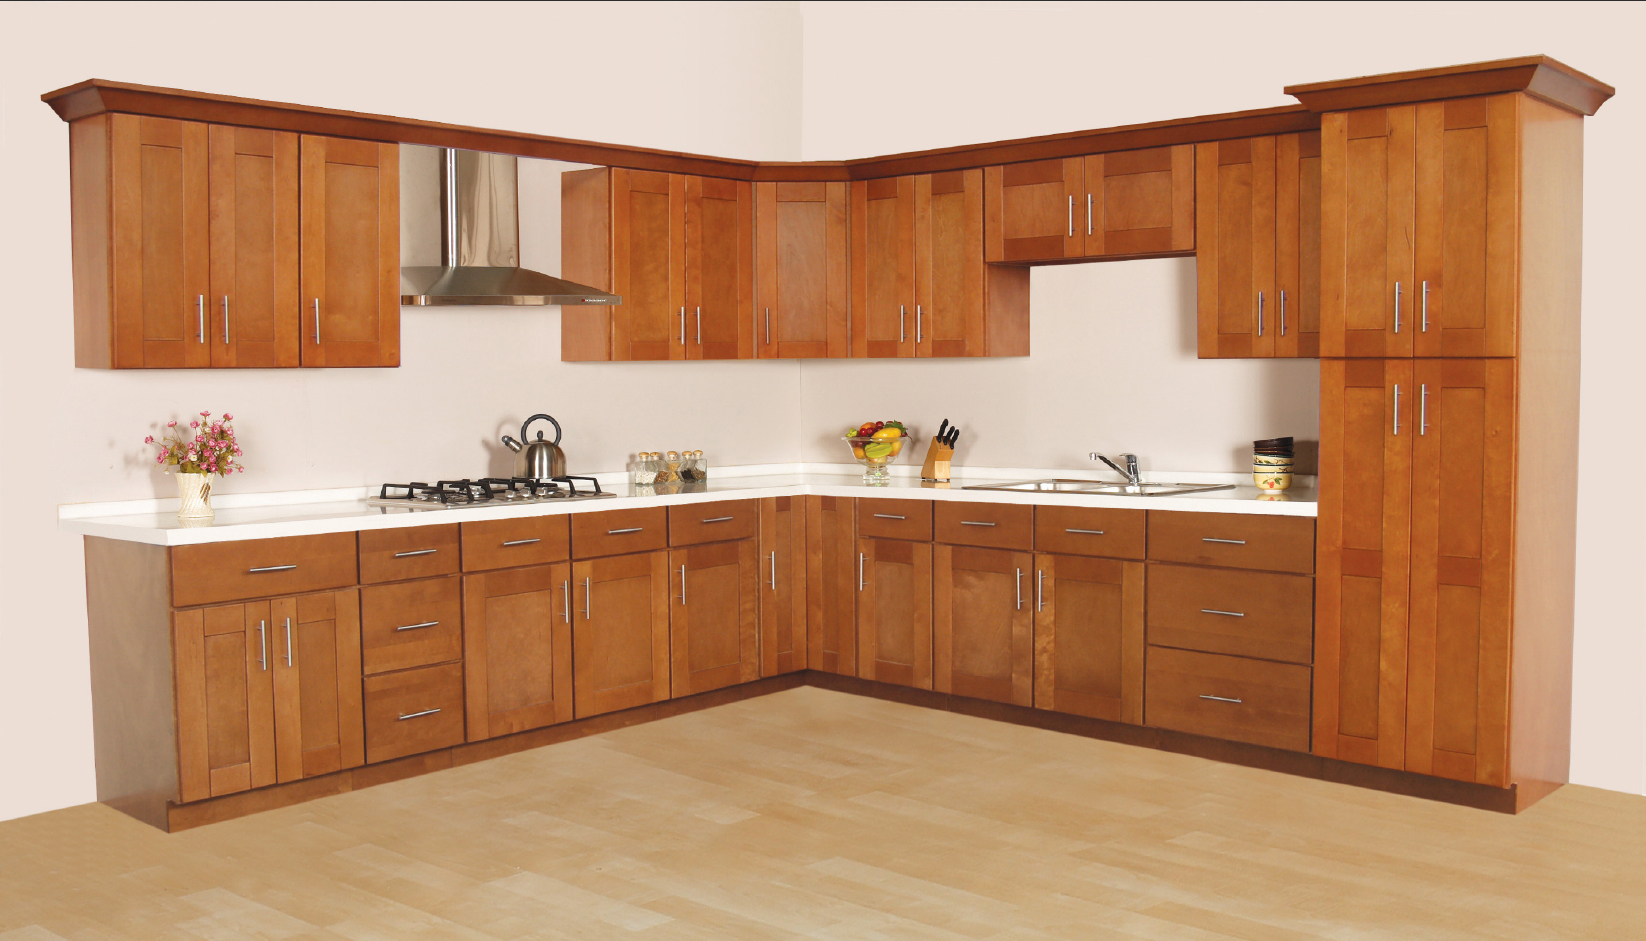 Menards kitchen cabinet price and details home and for Cabinets kitchen cabinets